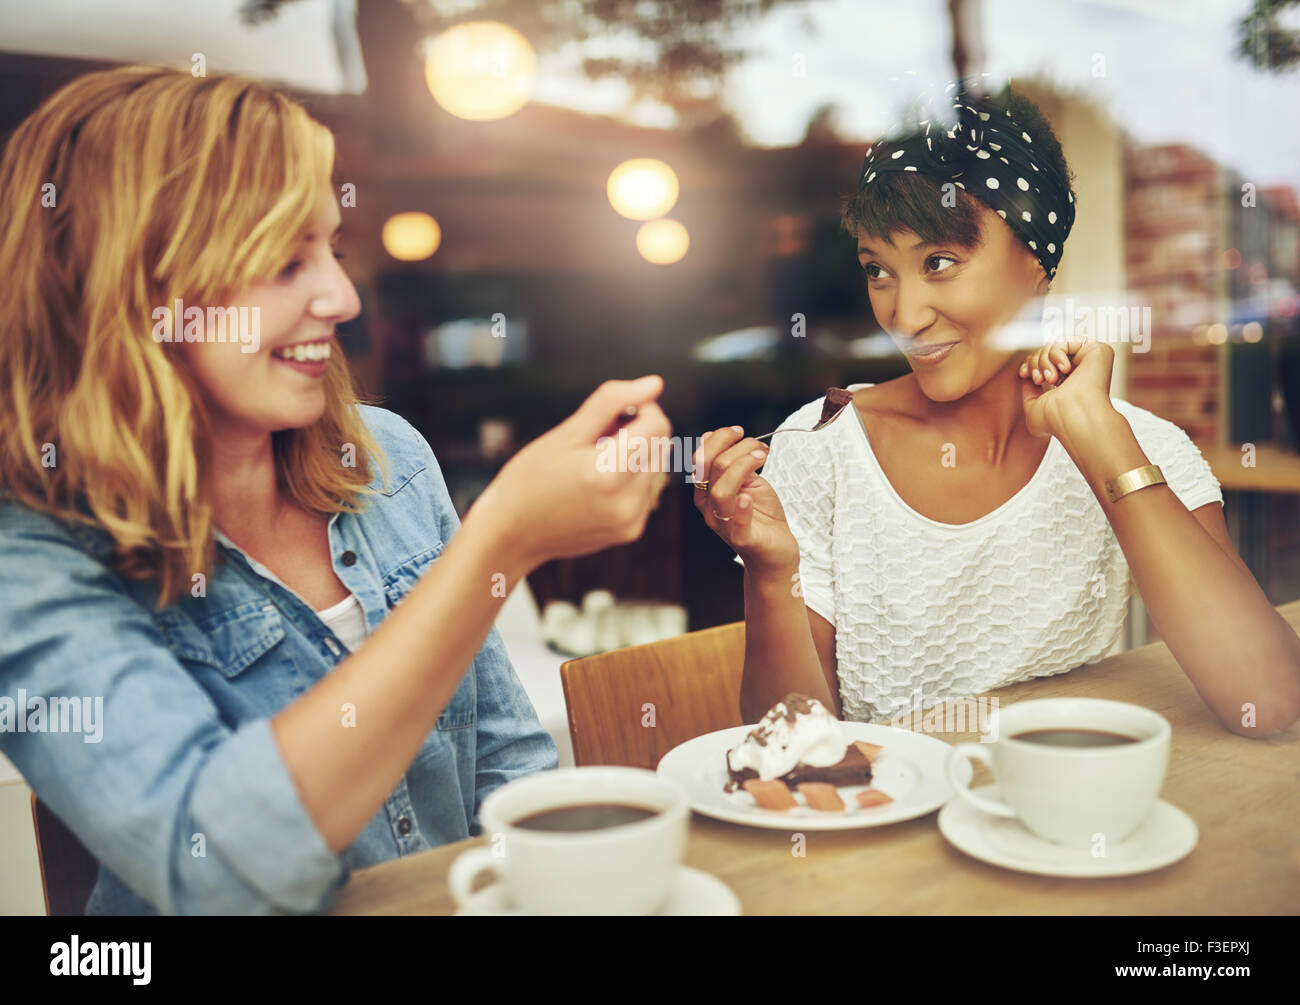 Two charismatic multi ethnic young girl friends sit at a counter in a cafe enjoying a cup of coffee while laughing - Stock Image